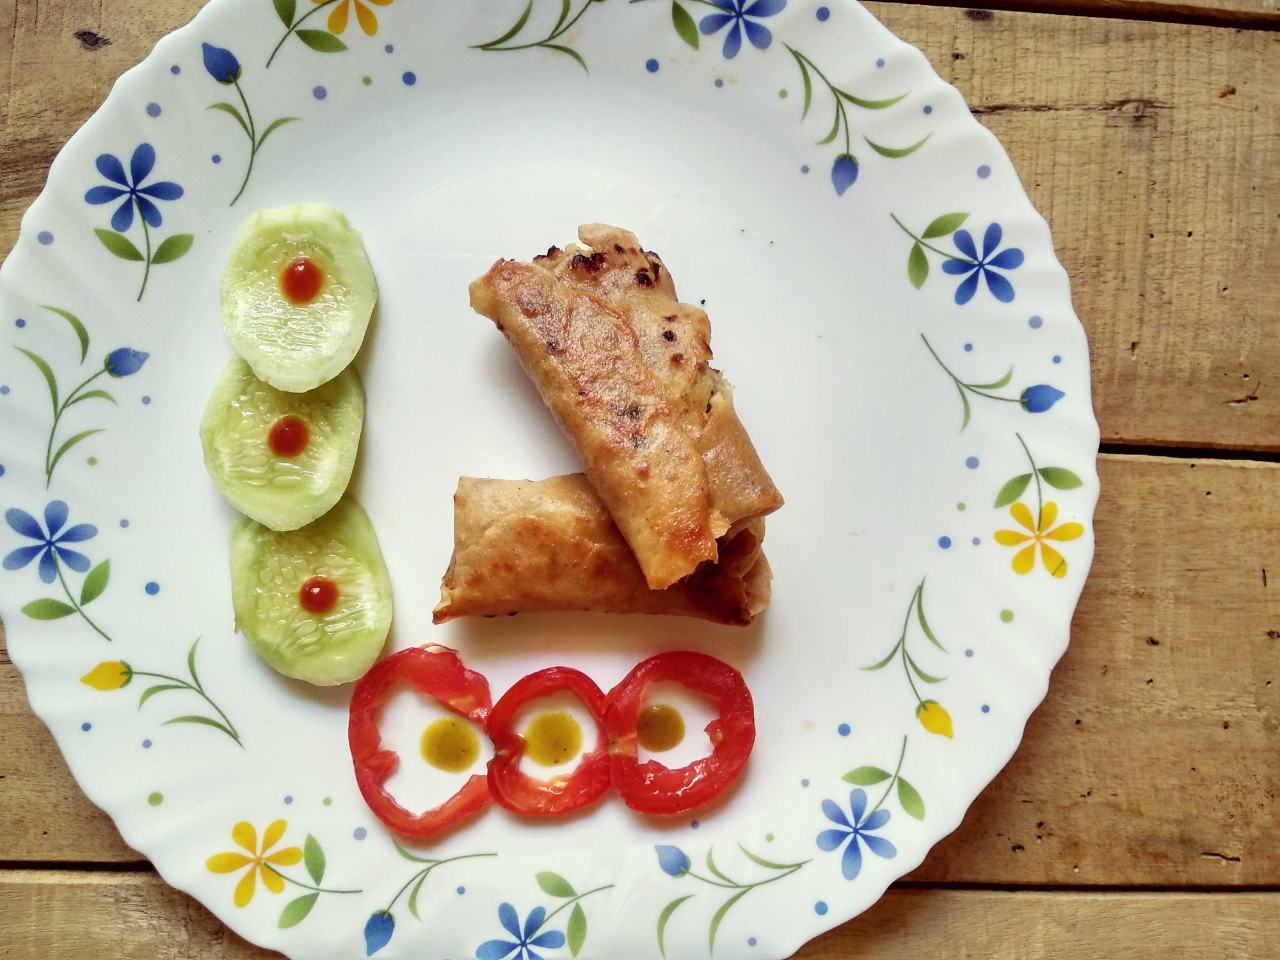 Chicken Spring Roll Wrapped With Thin Portion Of Roti